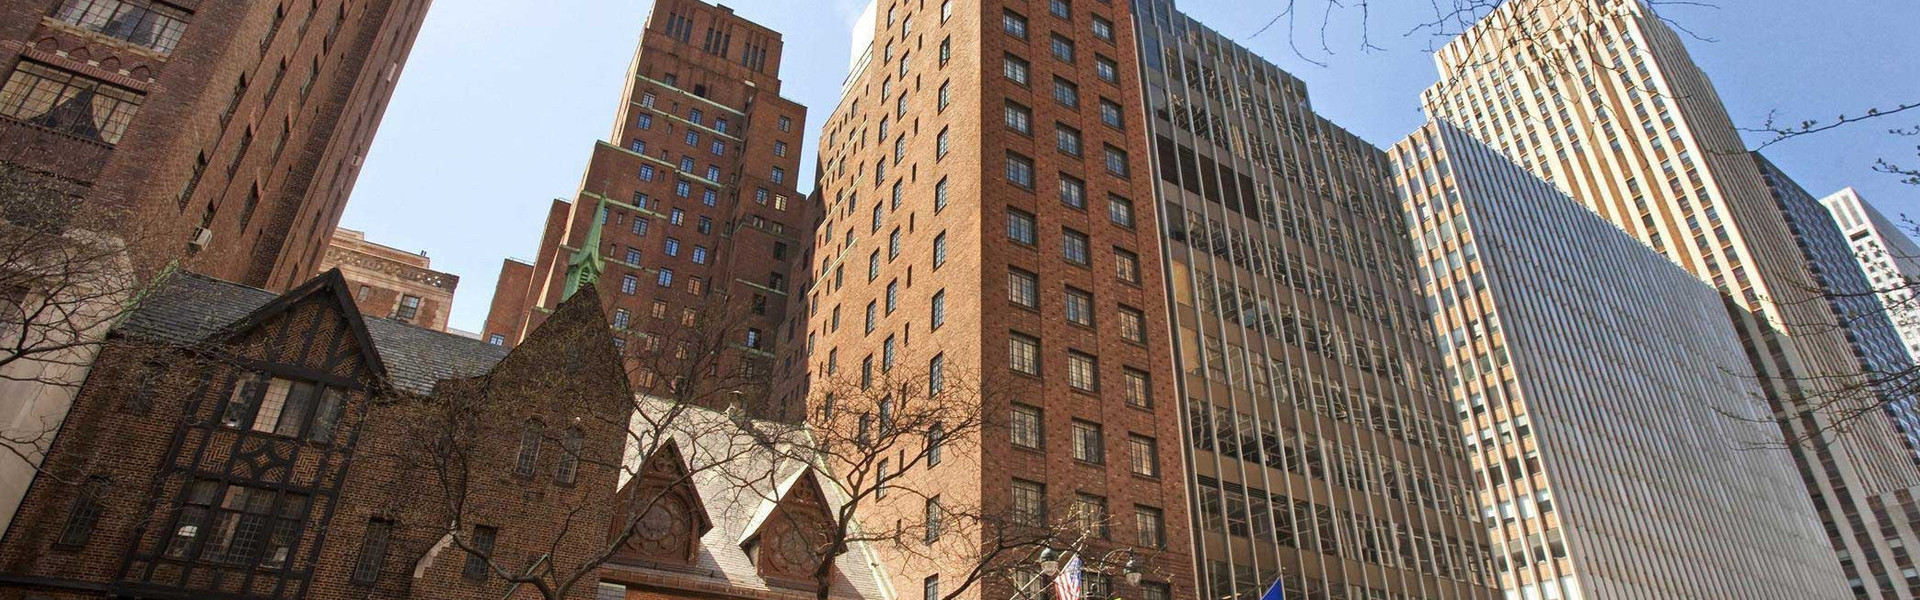 Our Hotel Near Grand Central Station | Westgate New York Grand Central